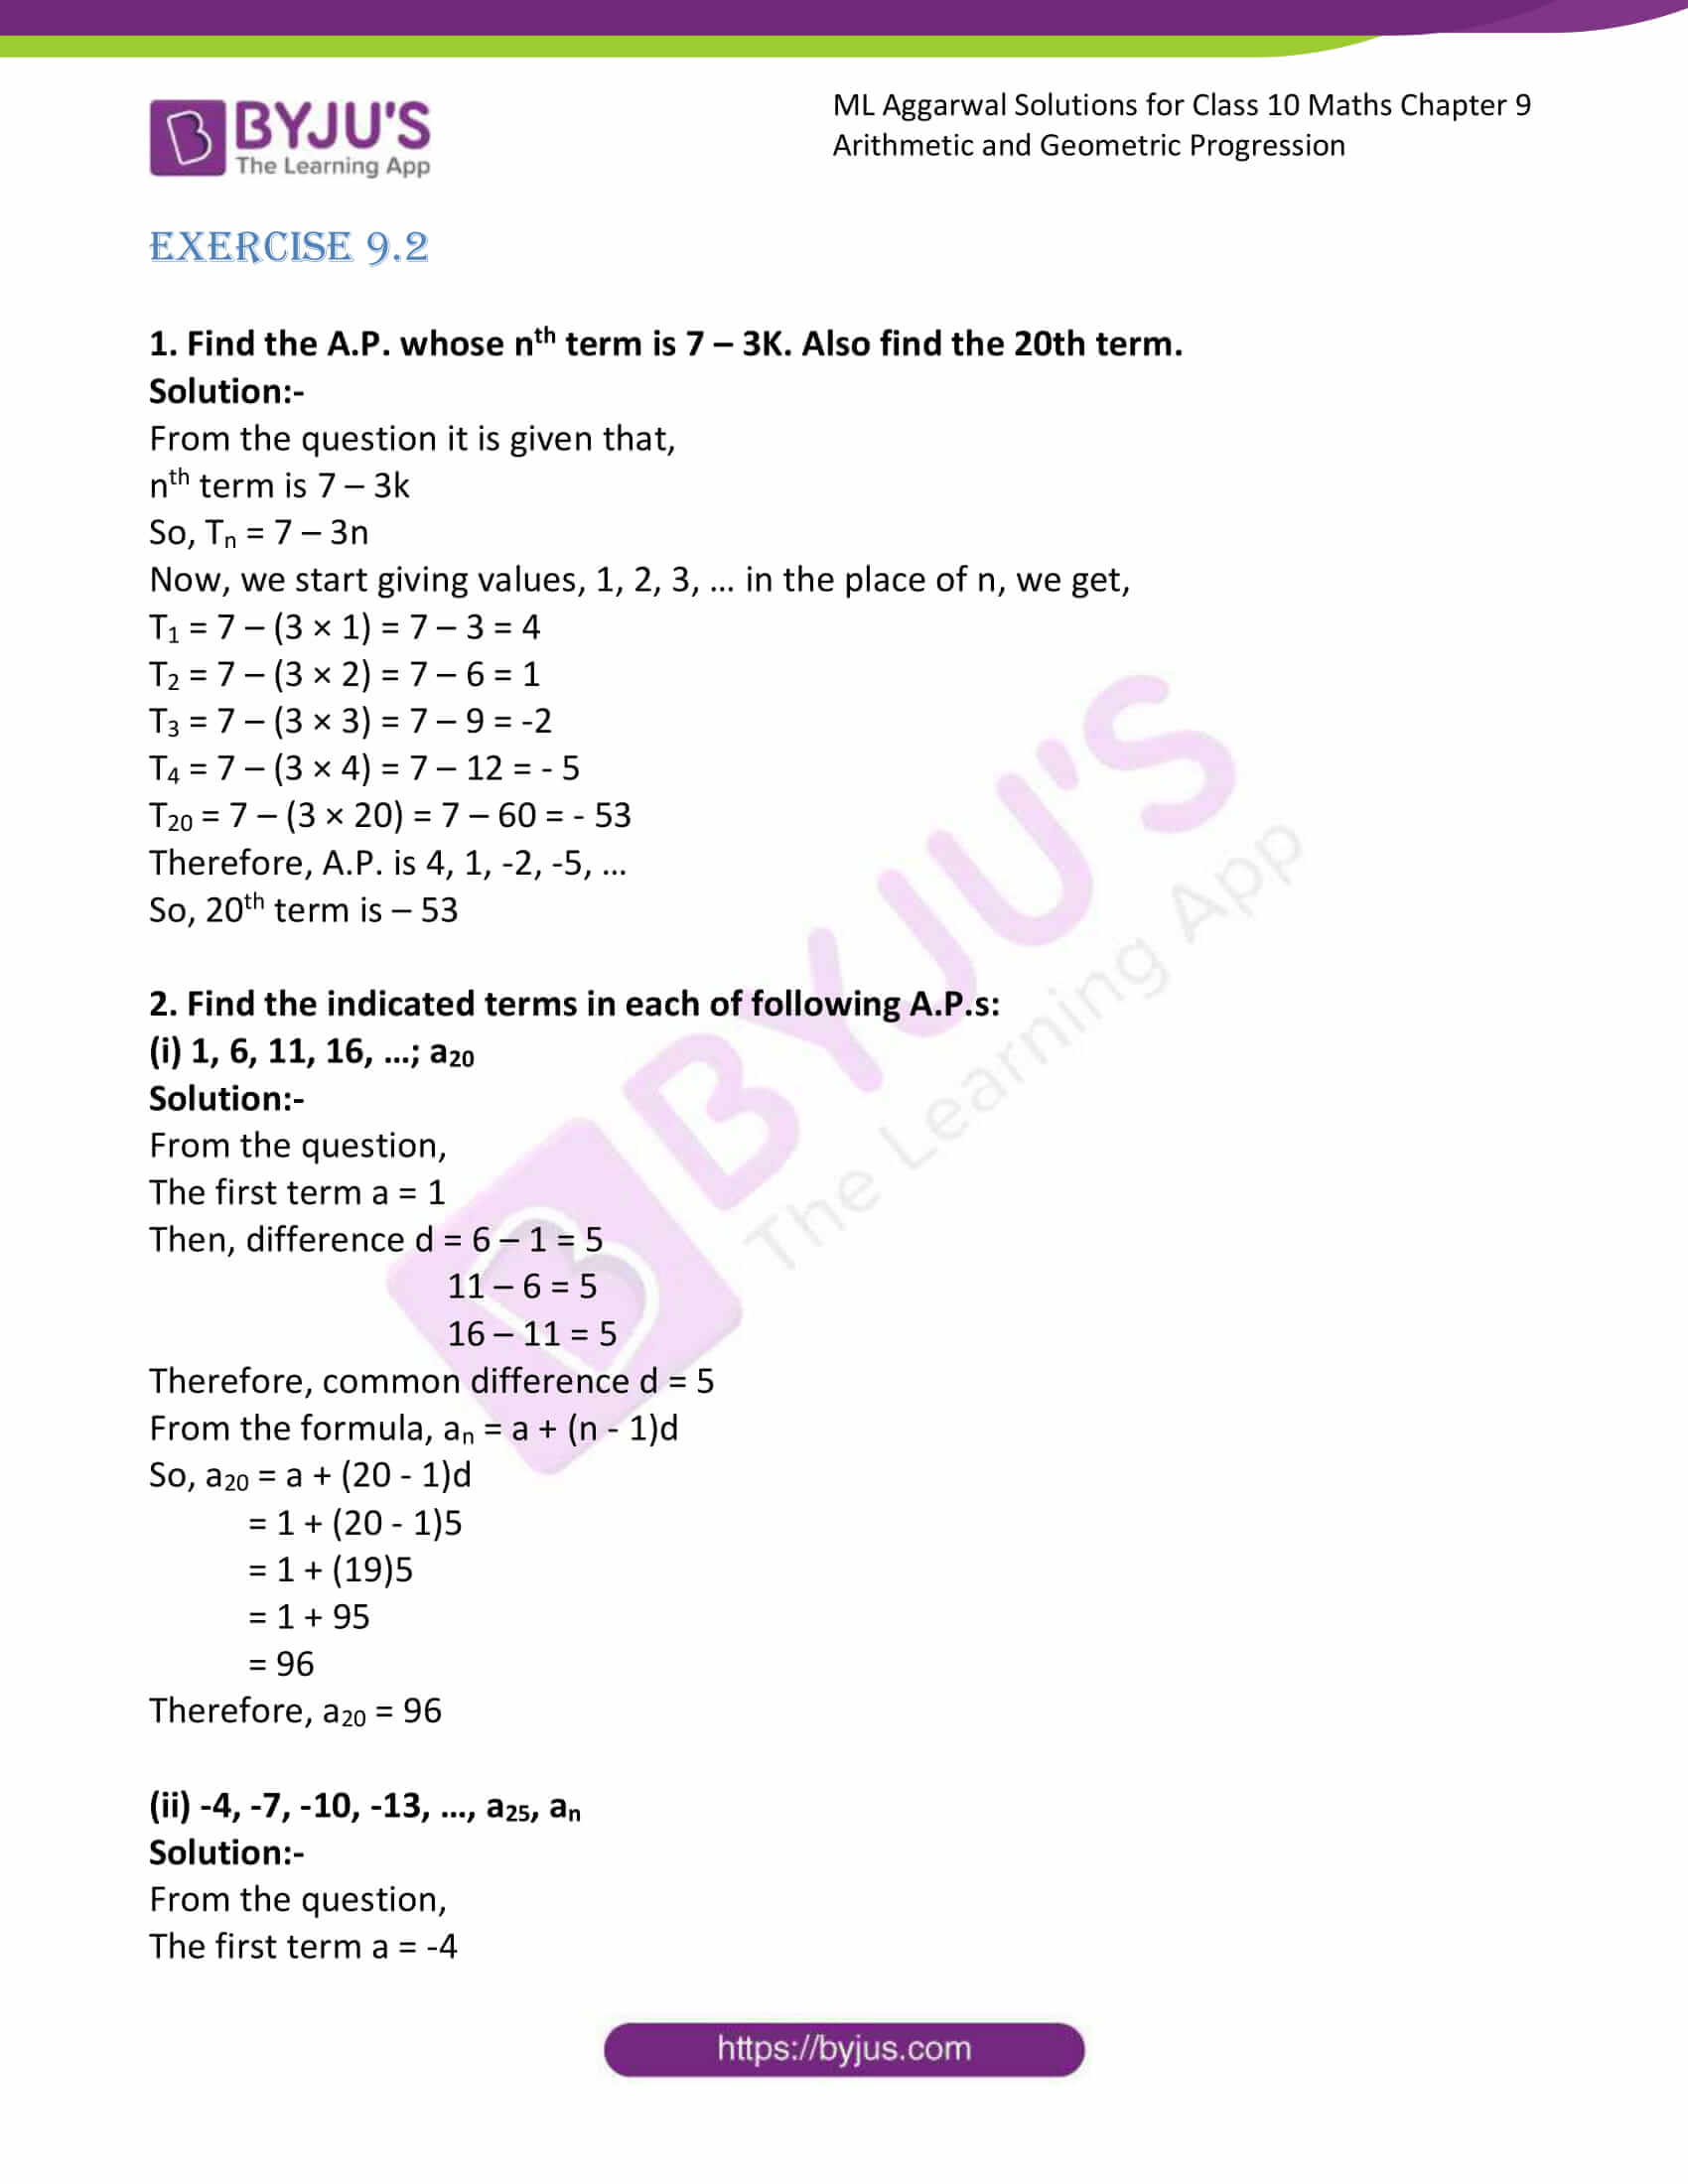 ml aggarwal solutions class 10 maths chapter 9 06